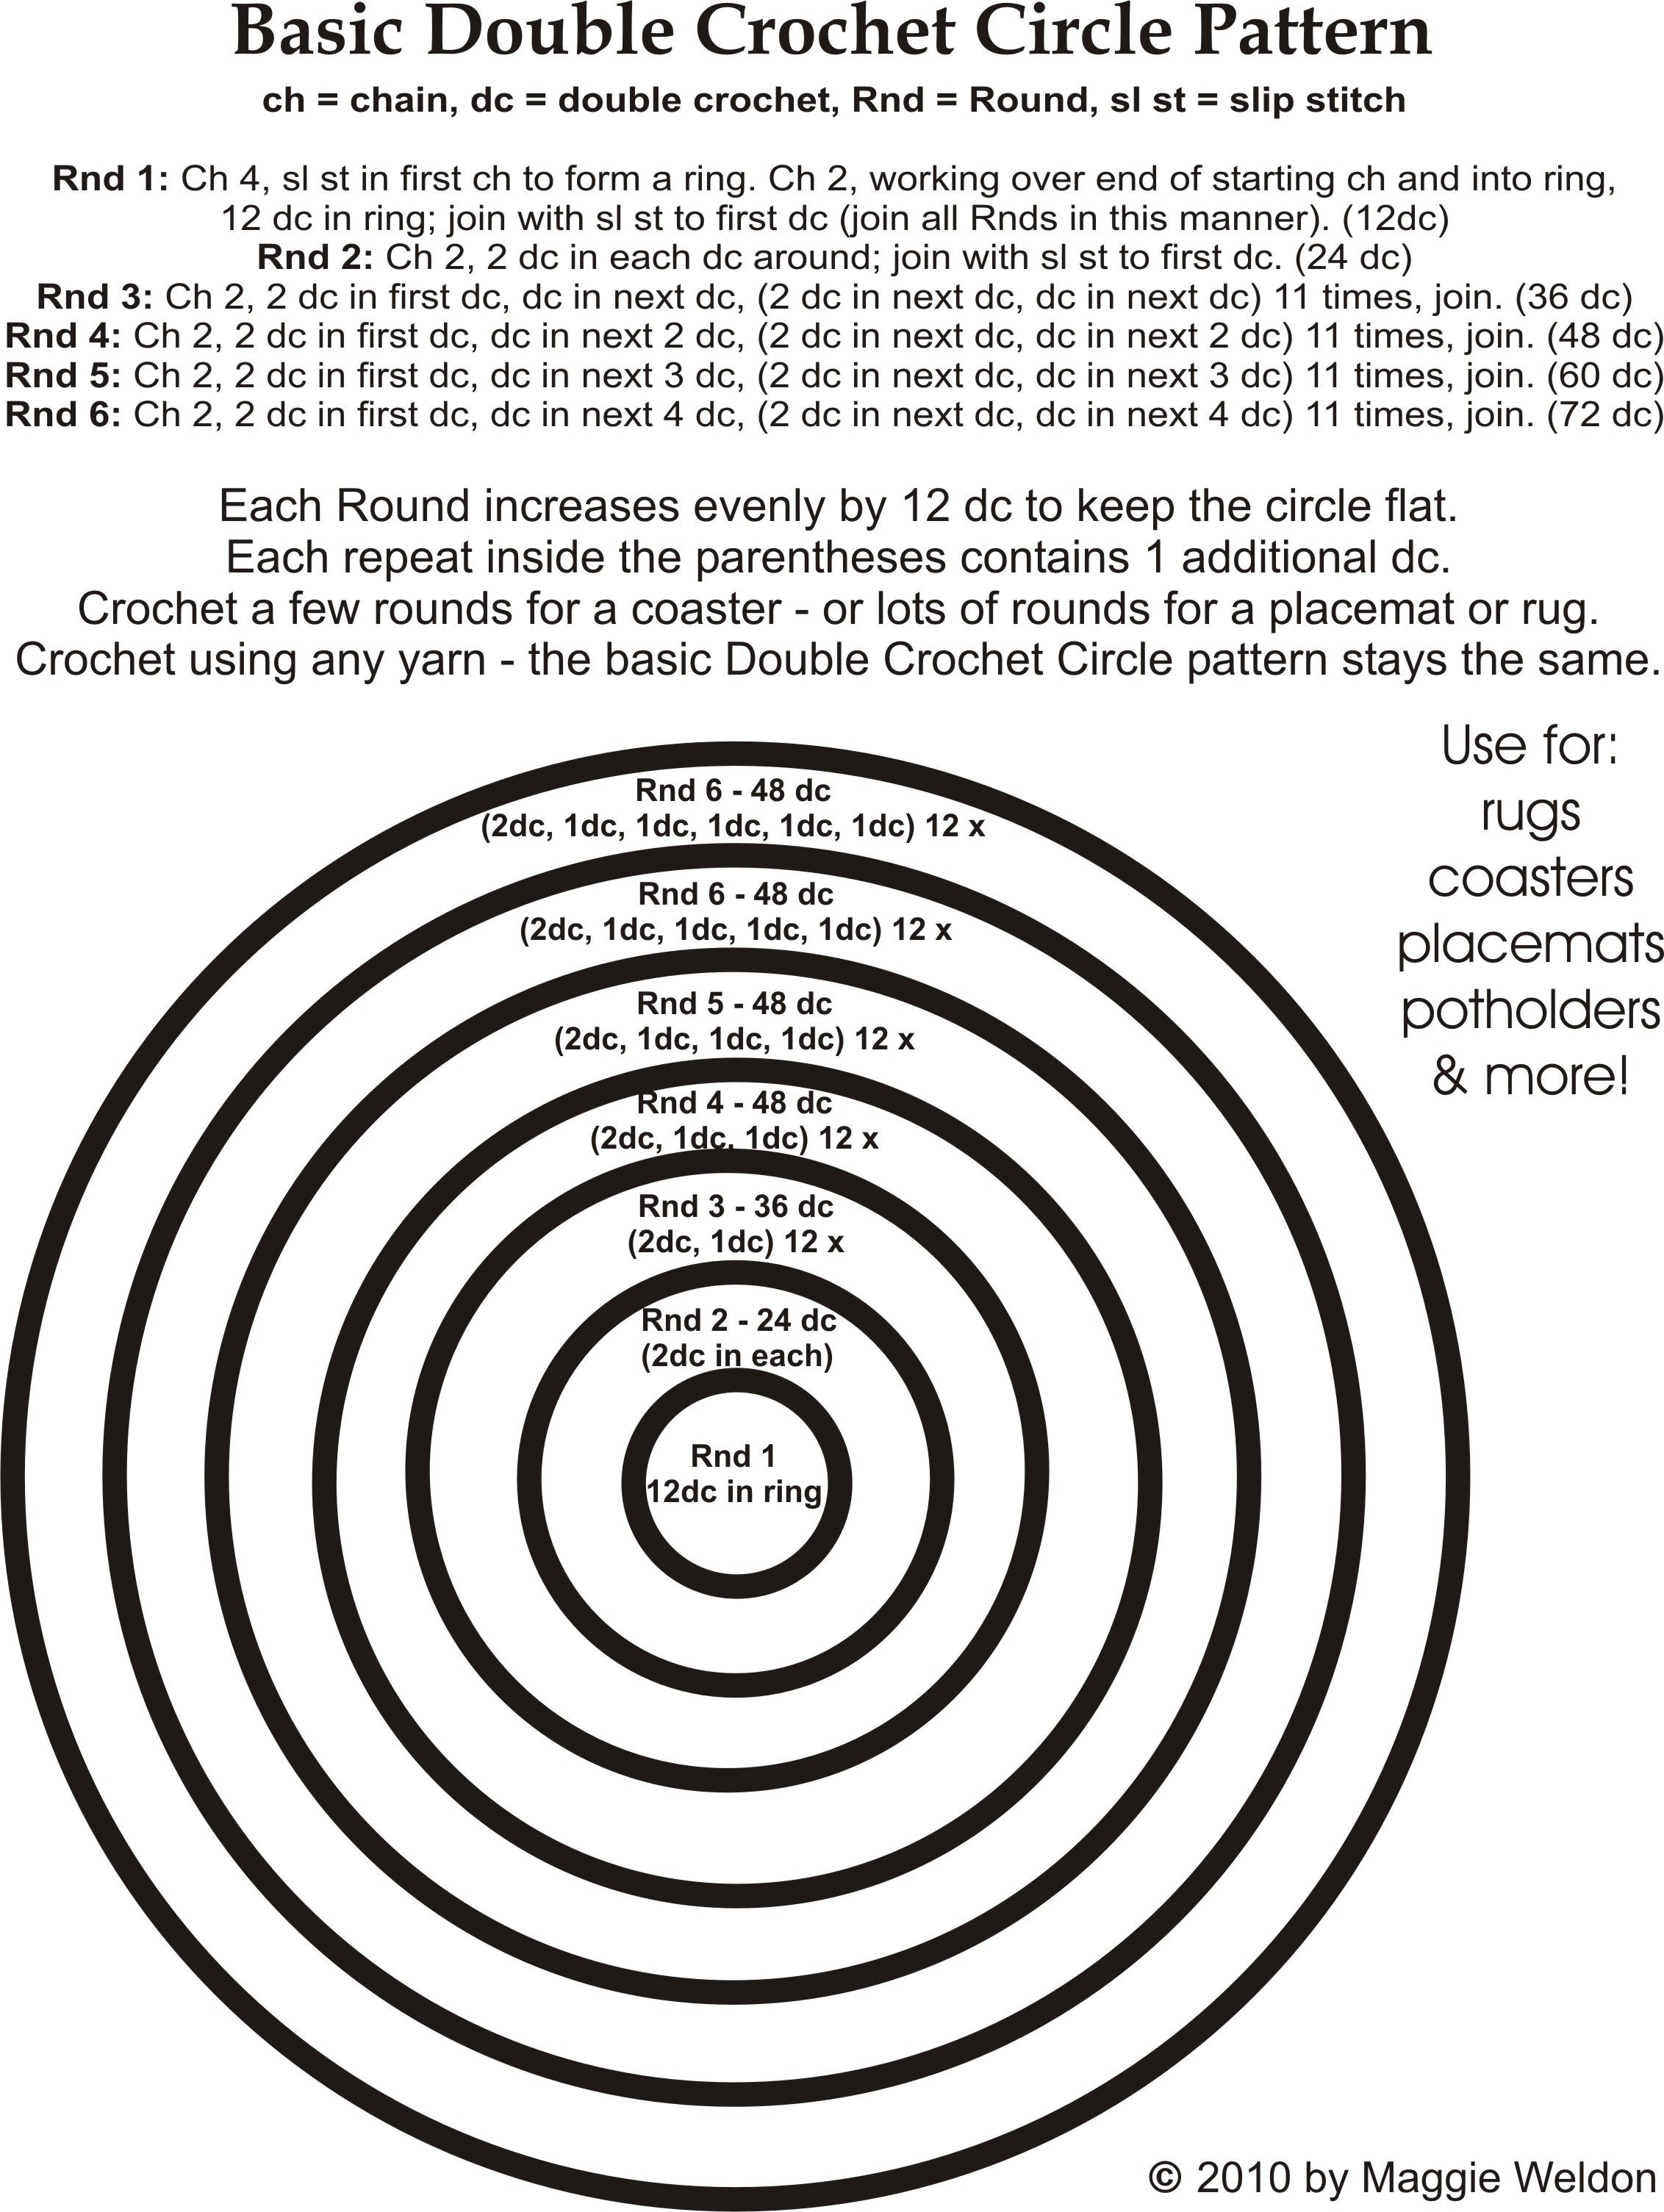 Basic double crochet Circle Chart.